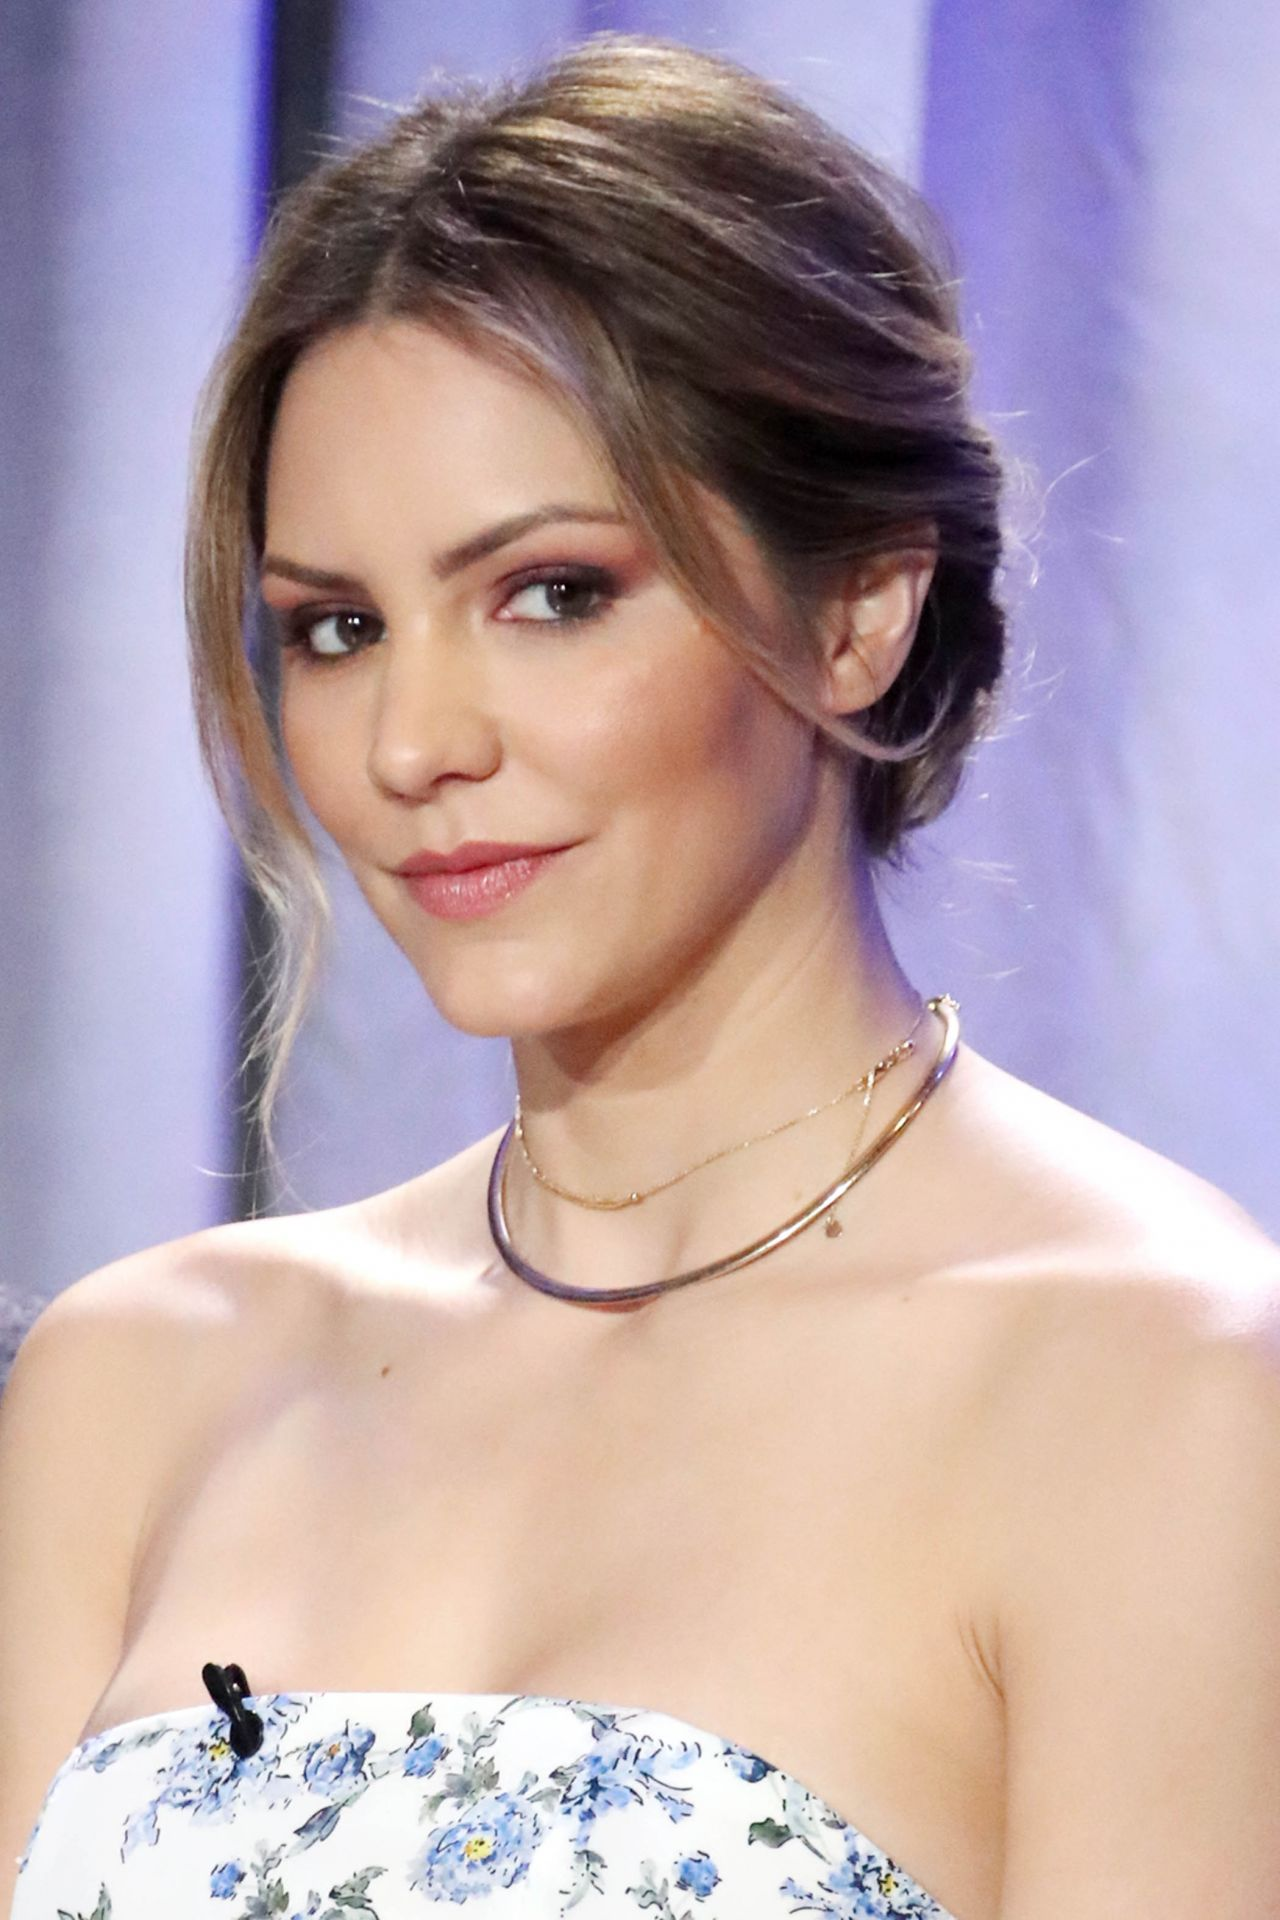 Katharine McPhee nudes (82 foto and video), Sexy, Is a cute, Boobs, lingerie 2019